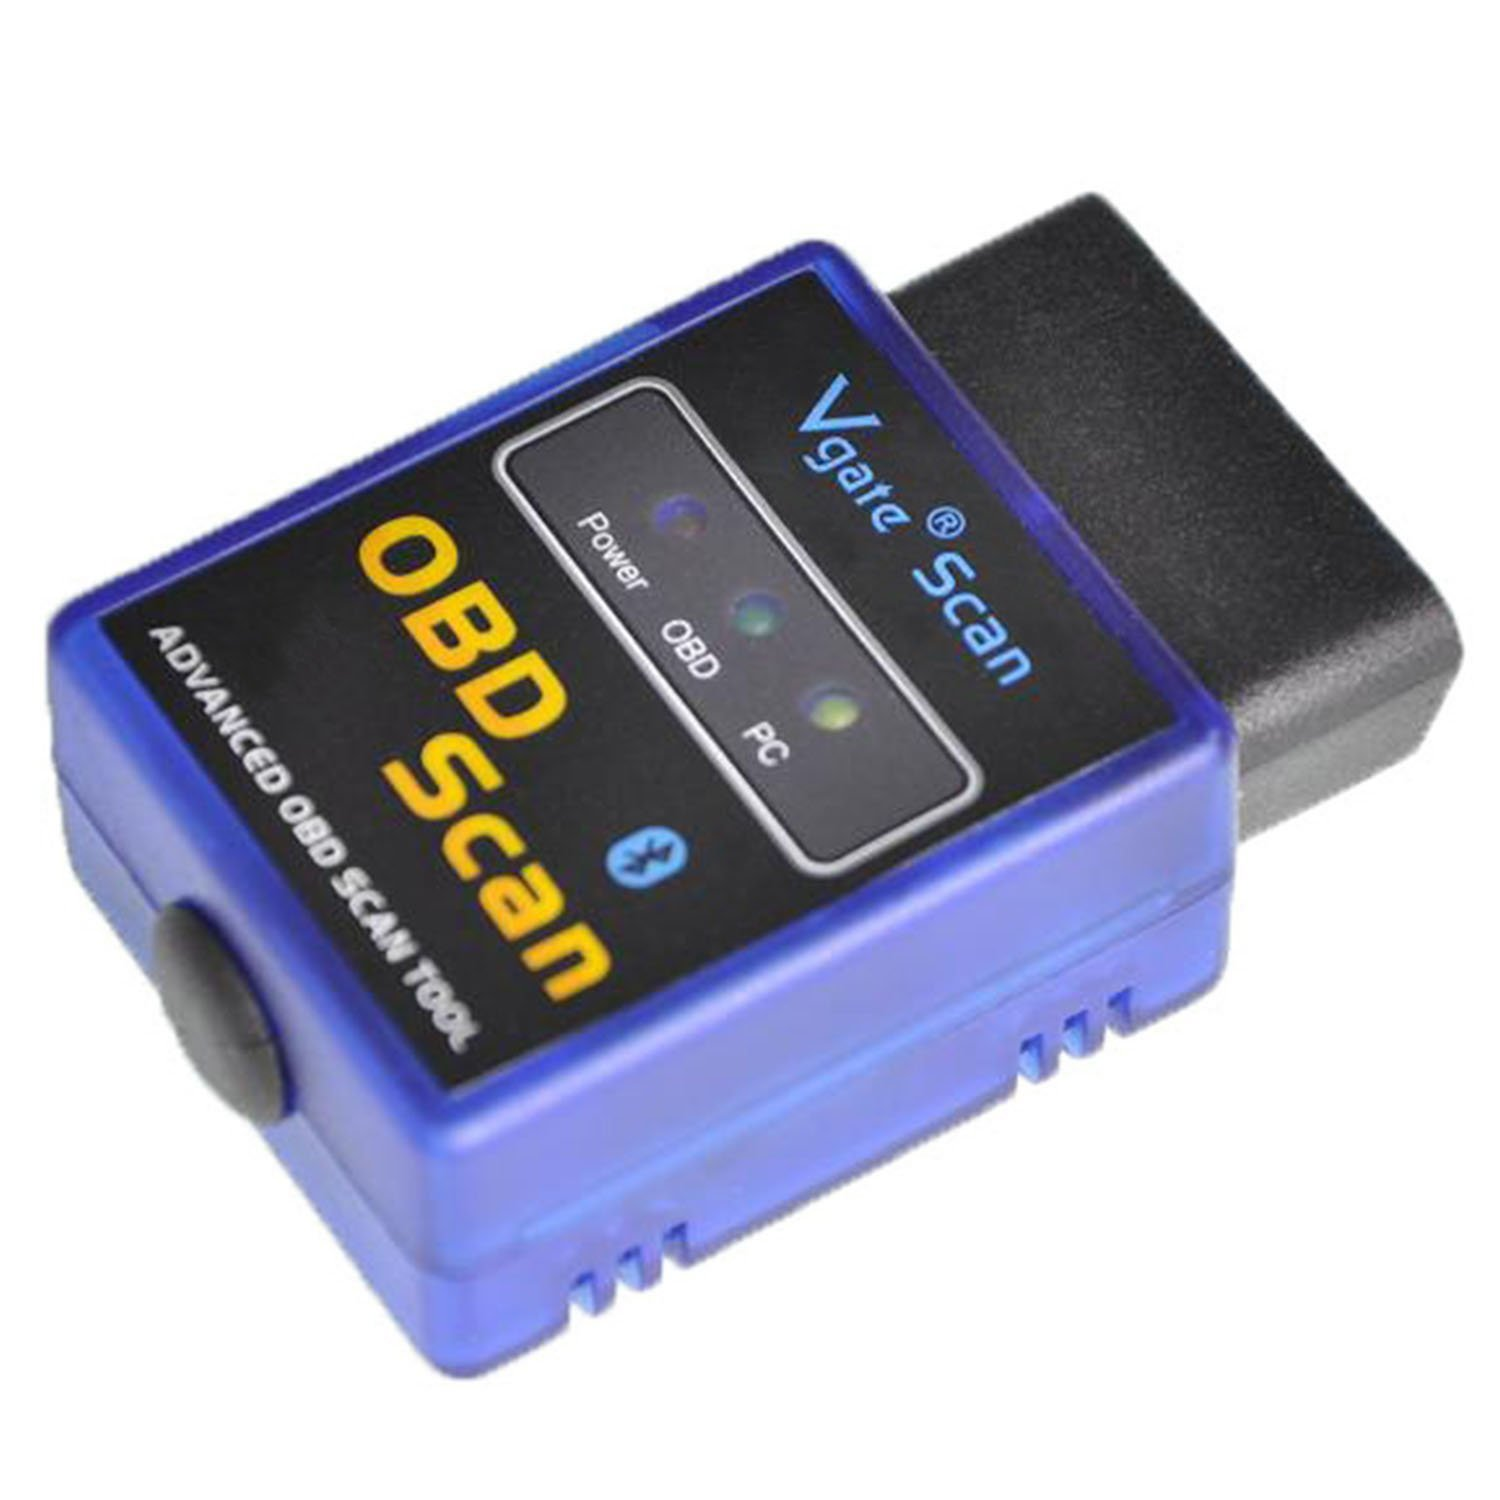 Bluetooth Scan Tool OBD2 OBDII Diagnostic Tools Scanner for Torque Android App Vgatemall